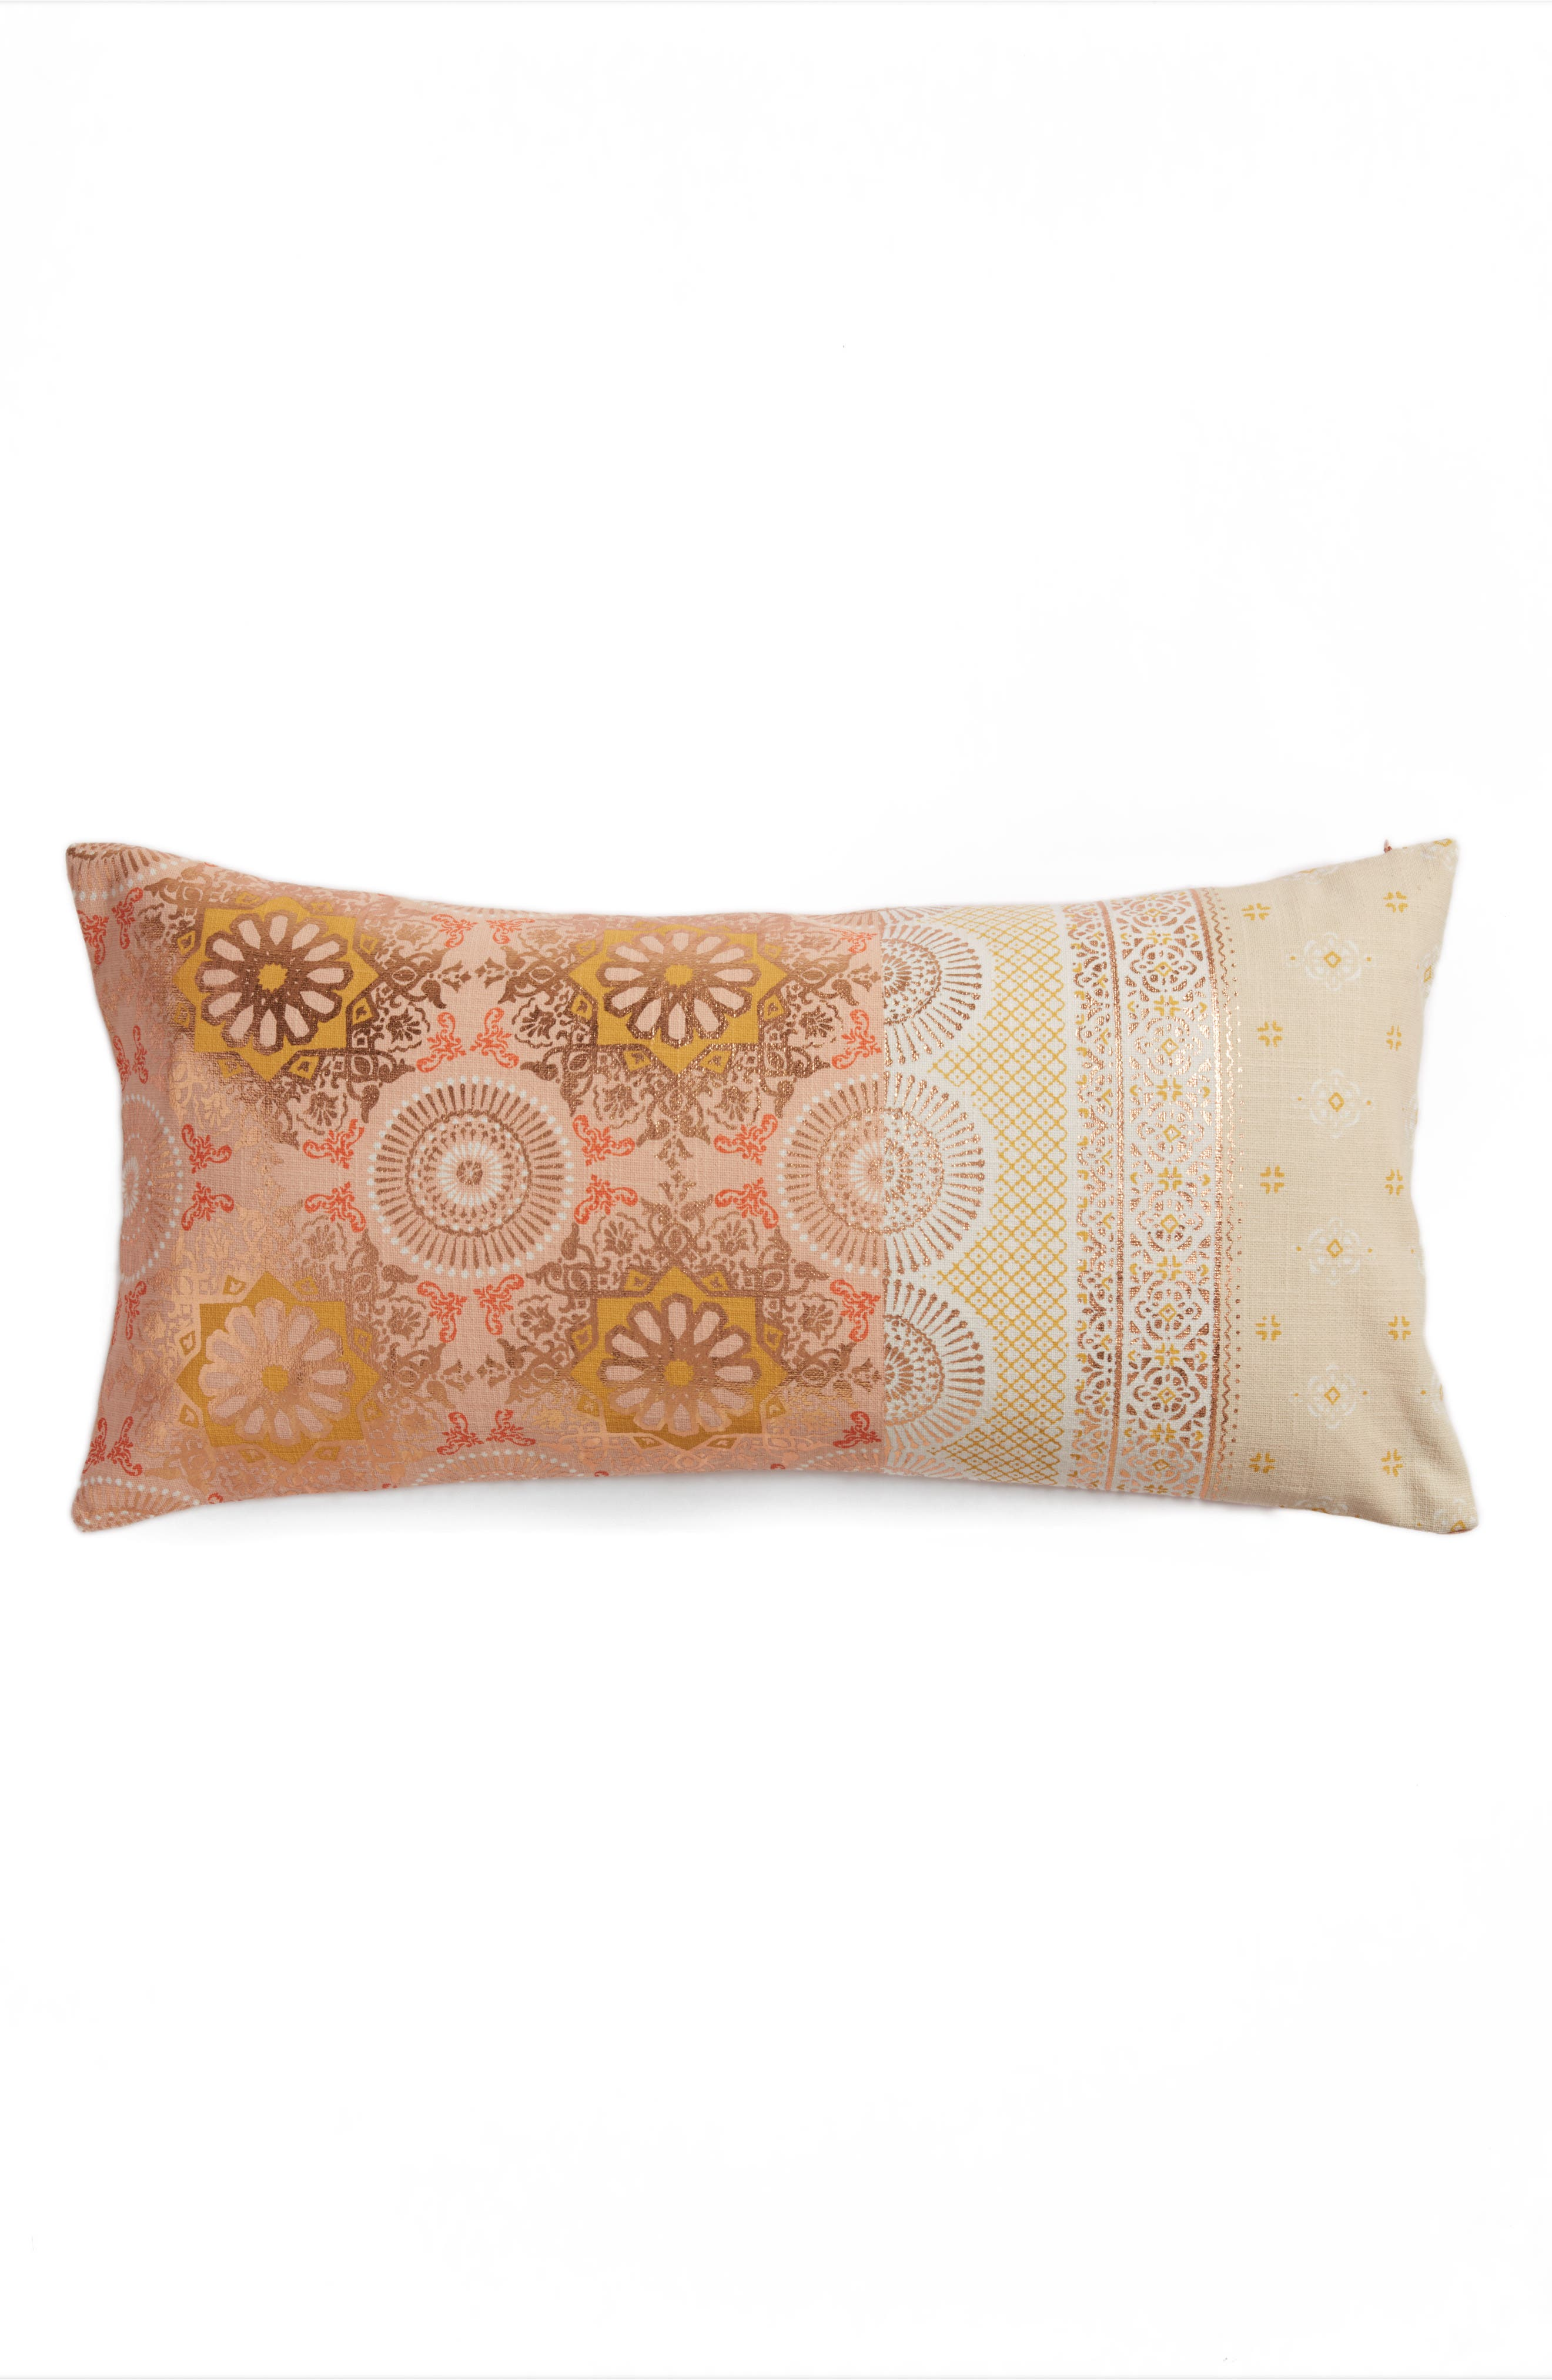 Nordstrom at Home Moroccan Print Accent Pillow